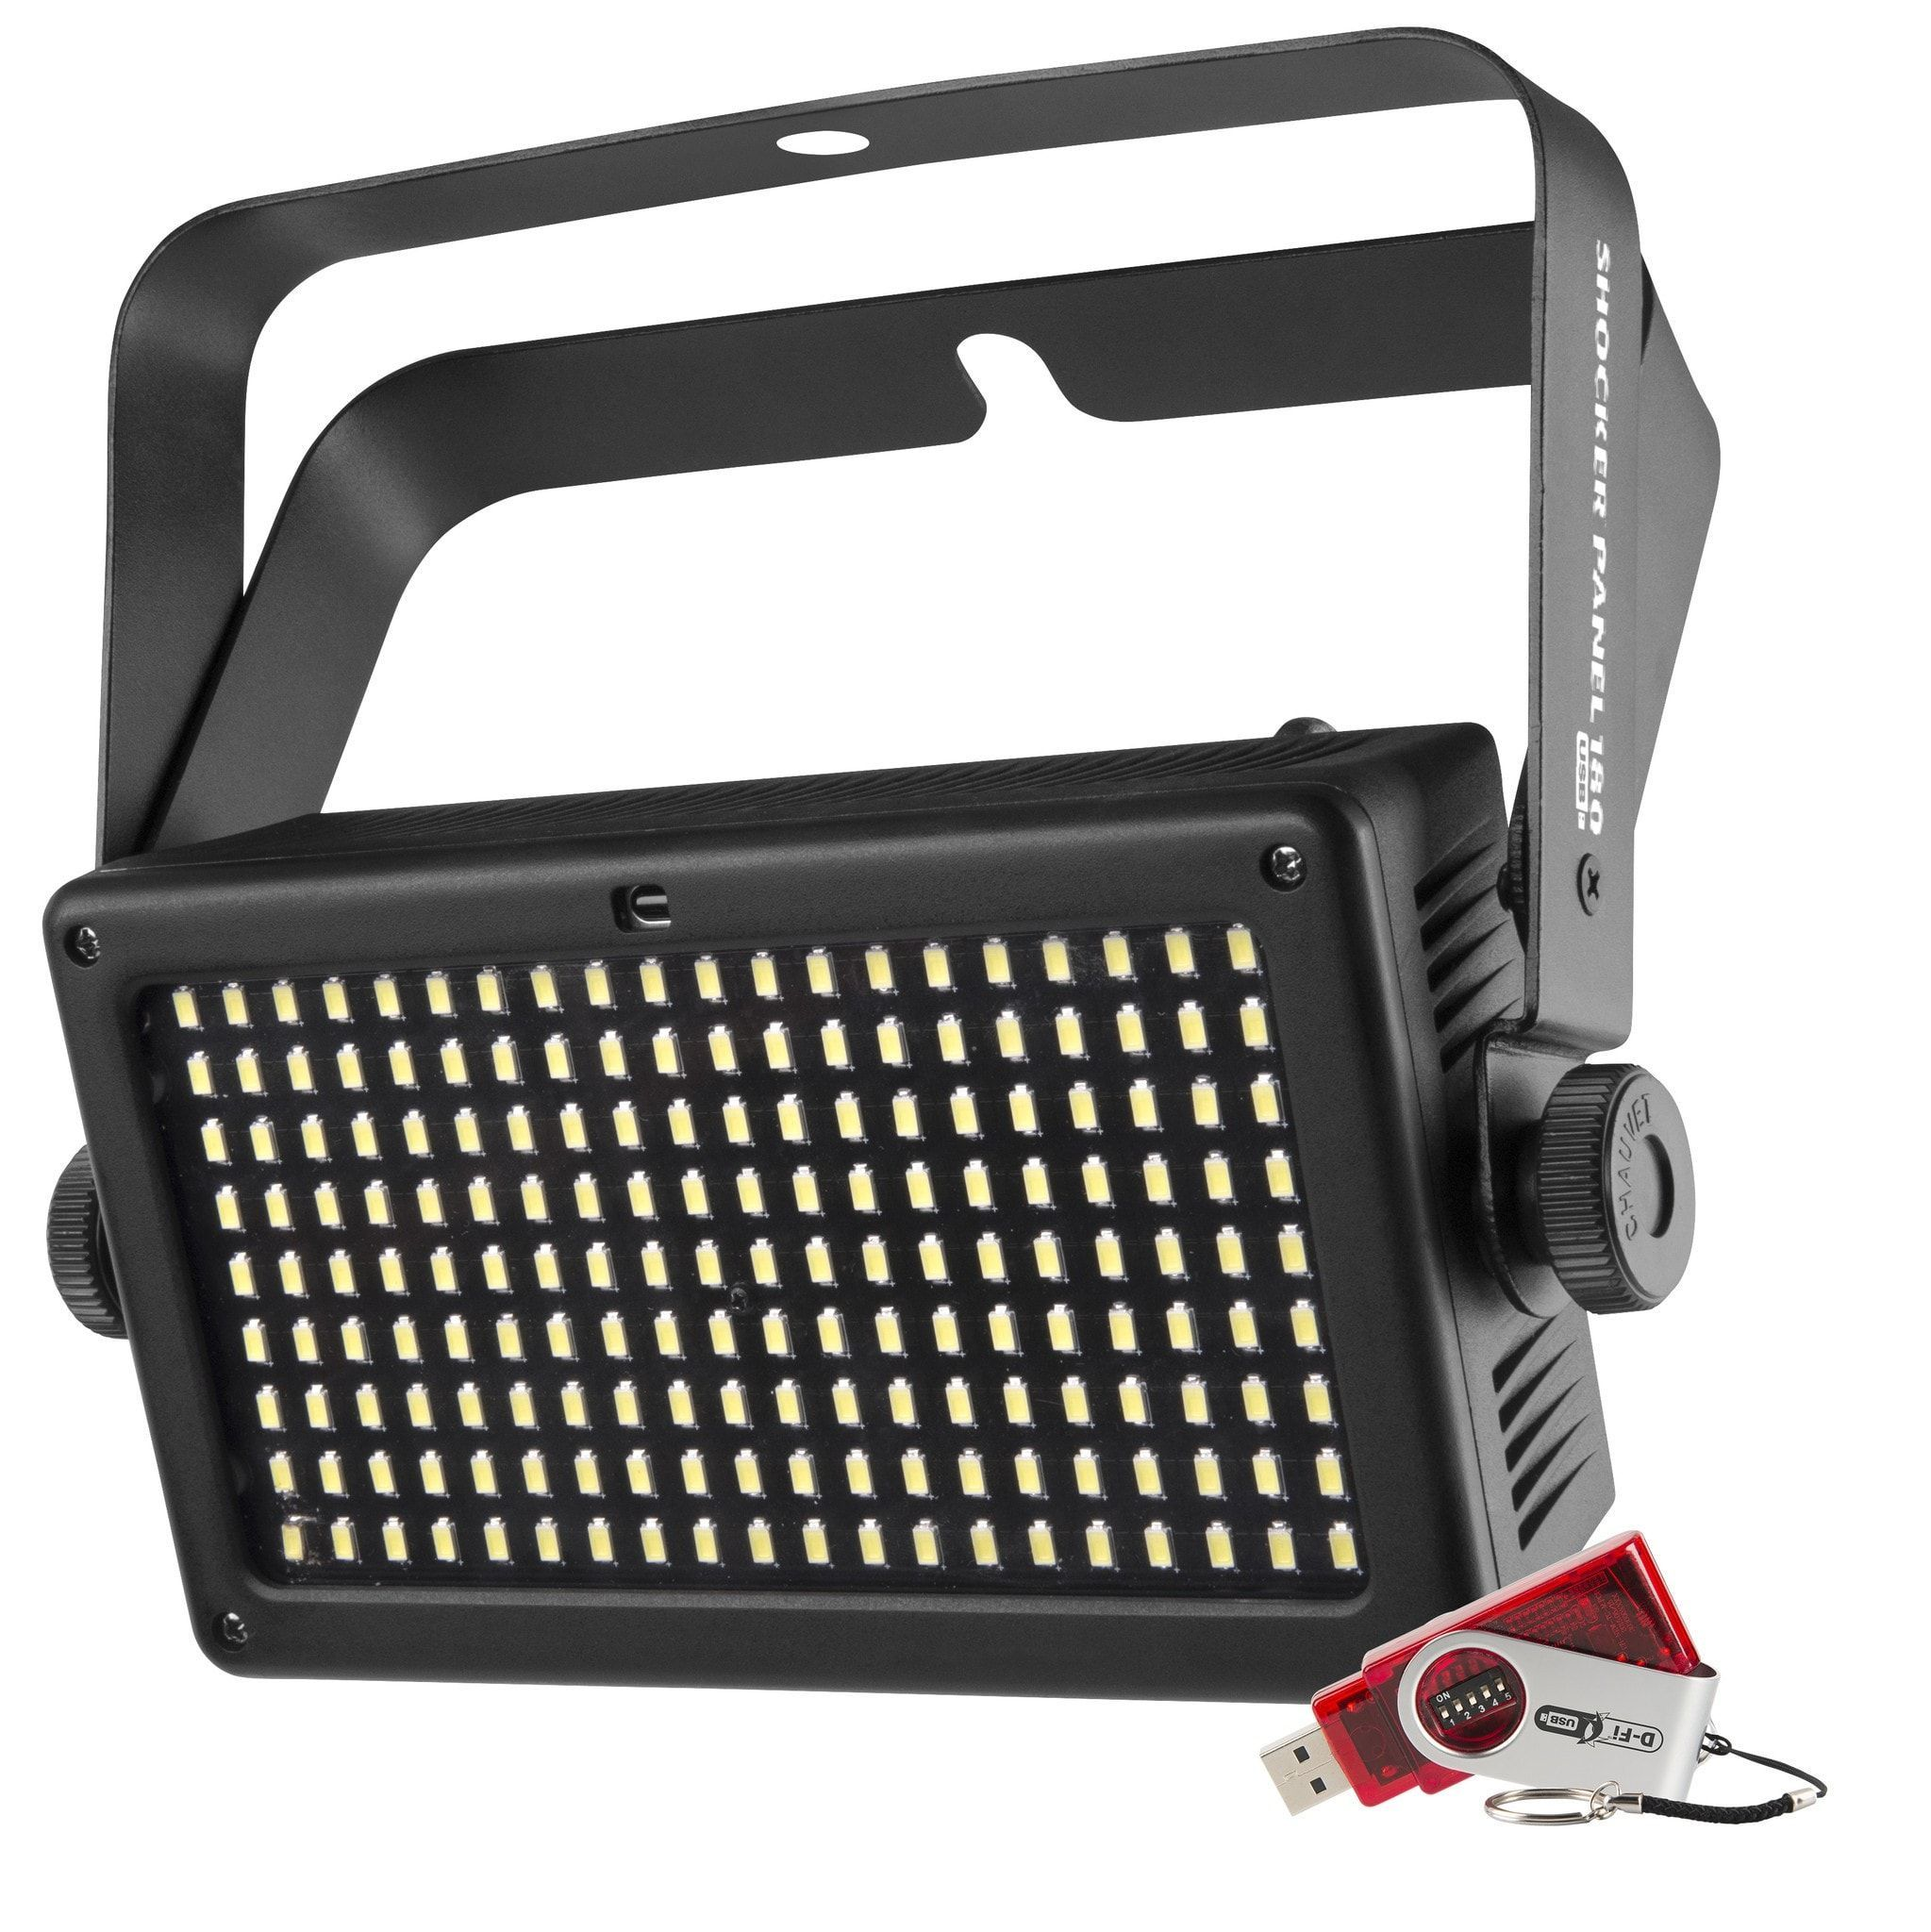 Chauvet Shocker Panel 180 Usb Strobe Light Products Power Led High Creates Attractive Effects Using 4 Zones Of Control Rugged Die Cast Housing Makes It Ideal For Mobile